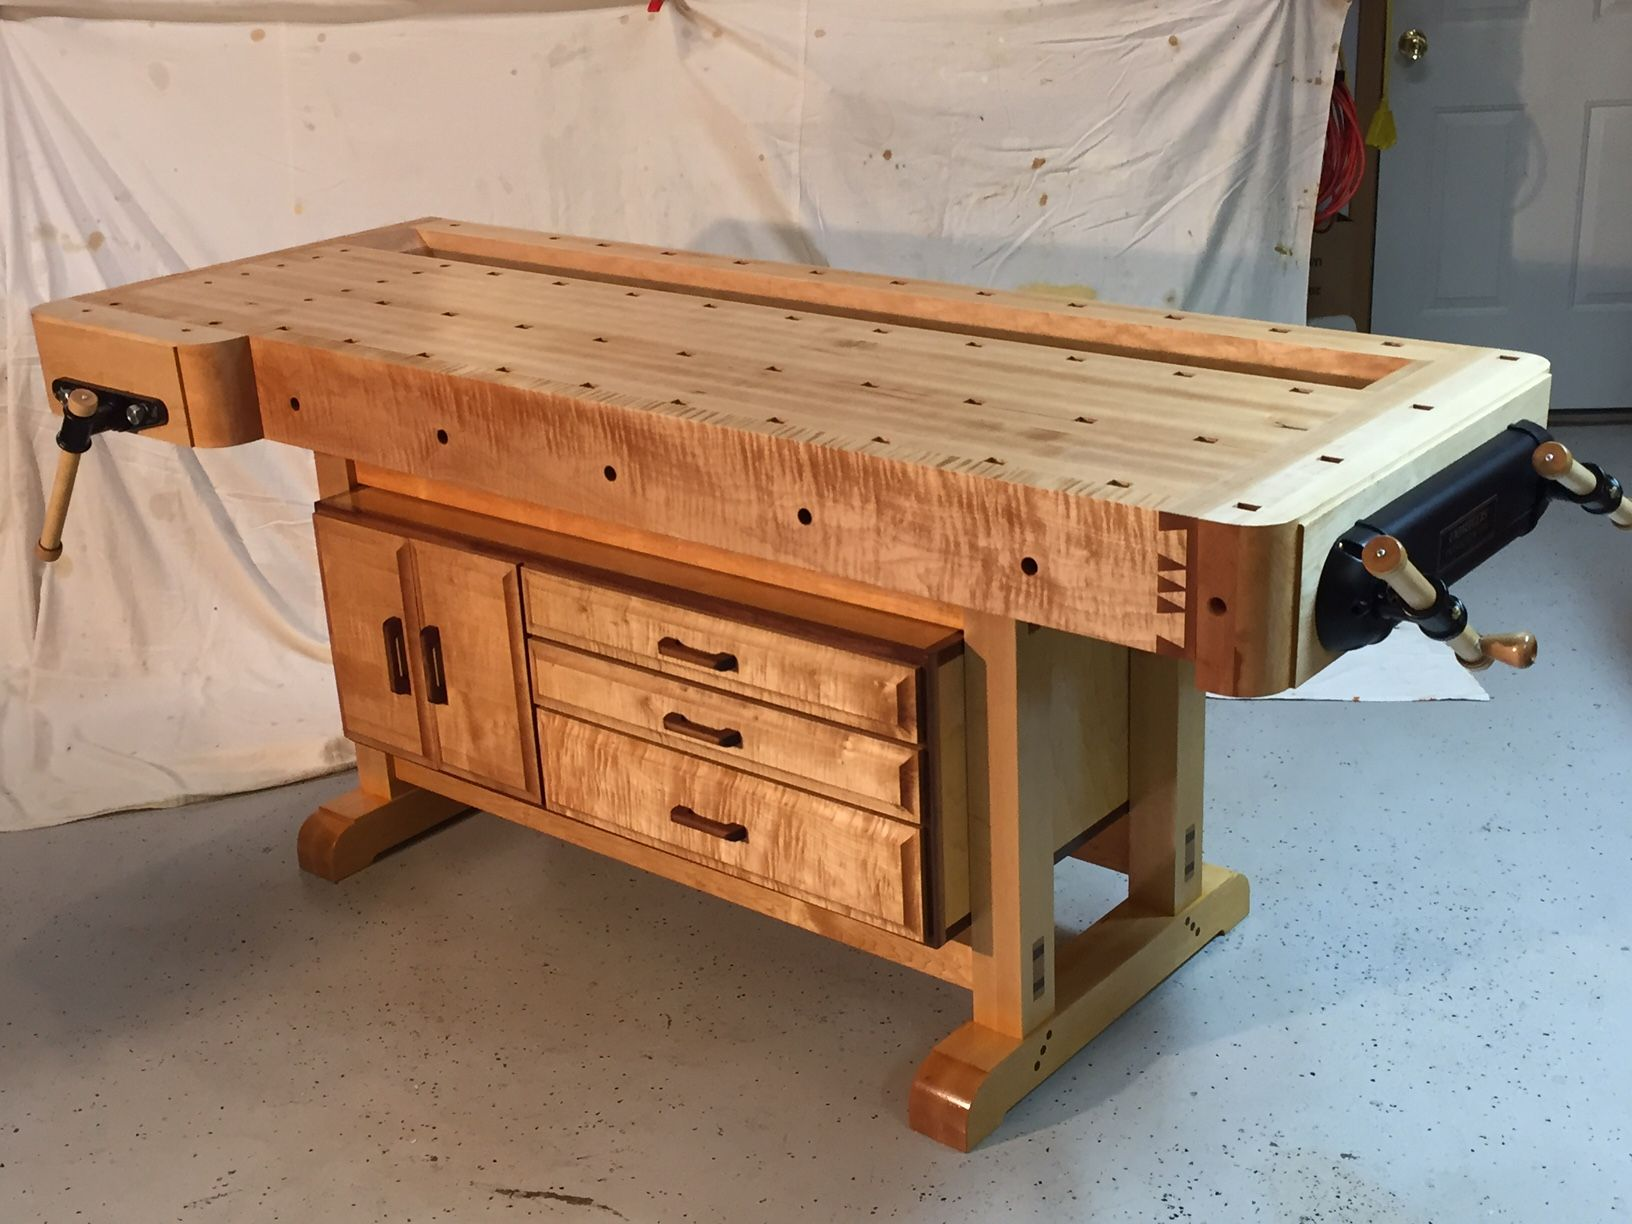 woodworking vice woodworking shop layout woodworking workbench workbench designs woodworking projects  [ 1632 x 1224 Pixel ]